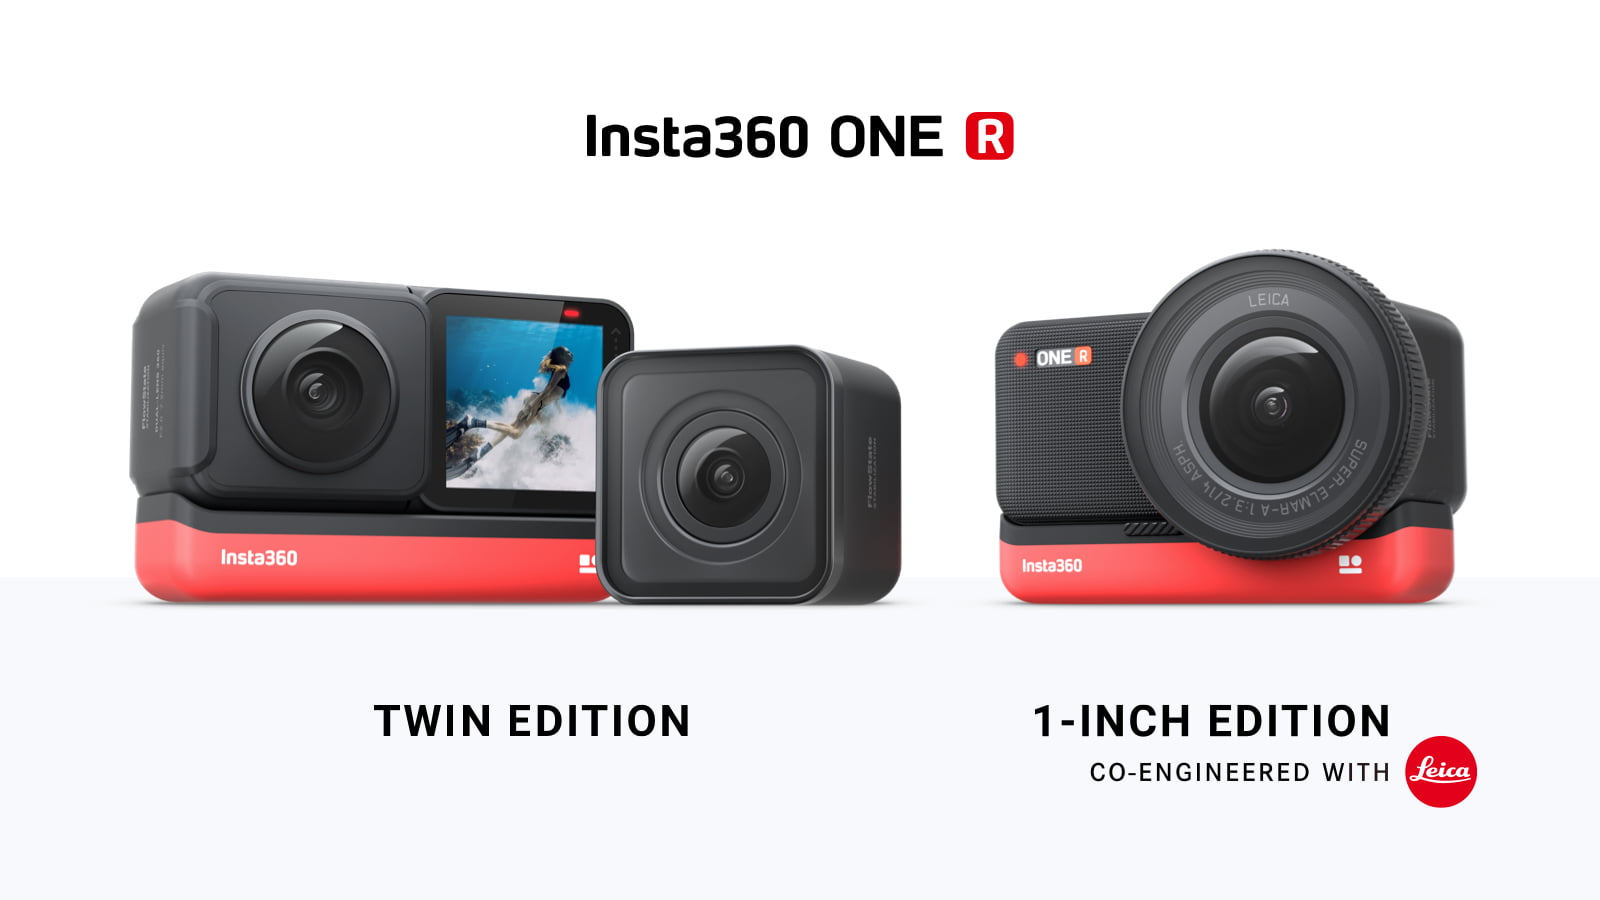 Insta360 One R editions